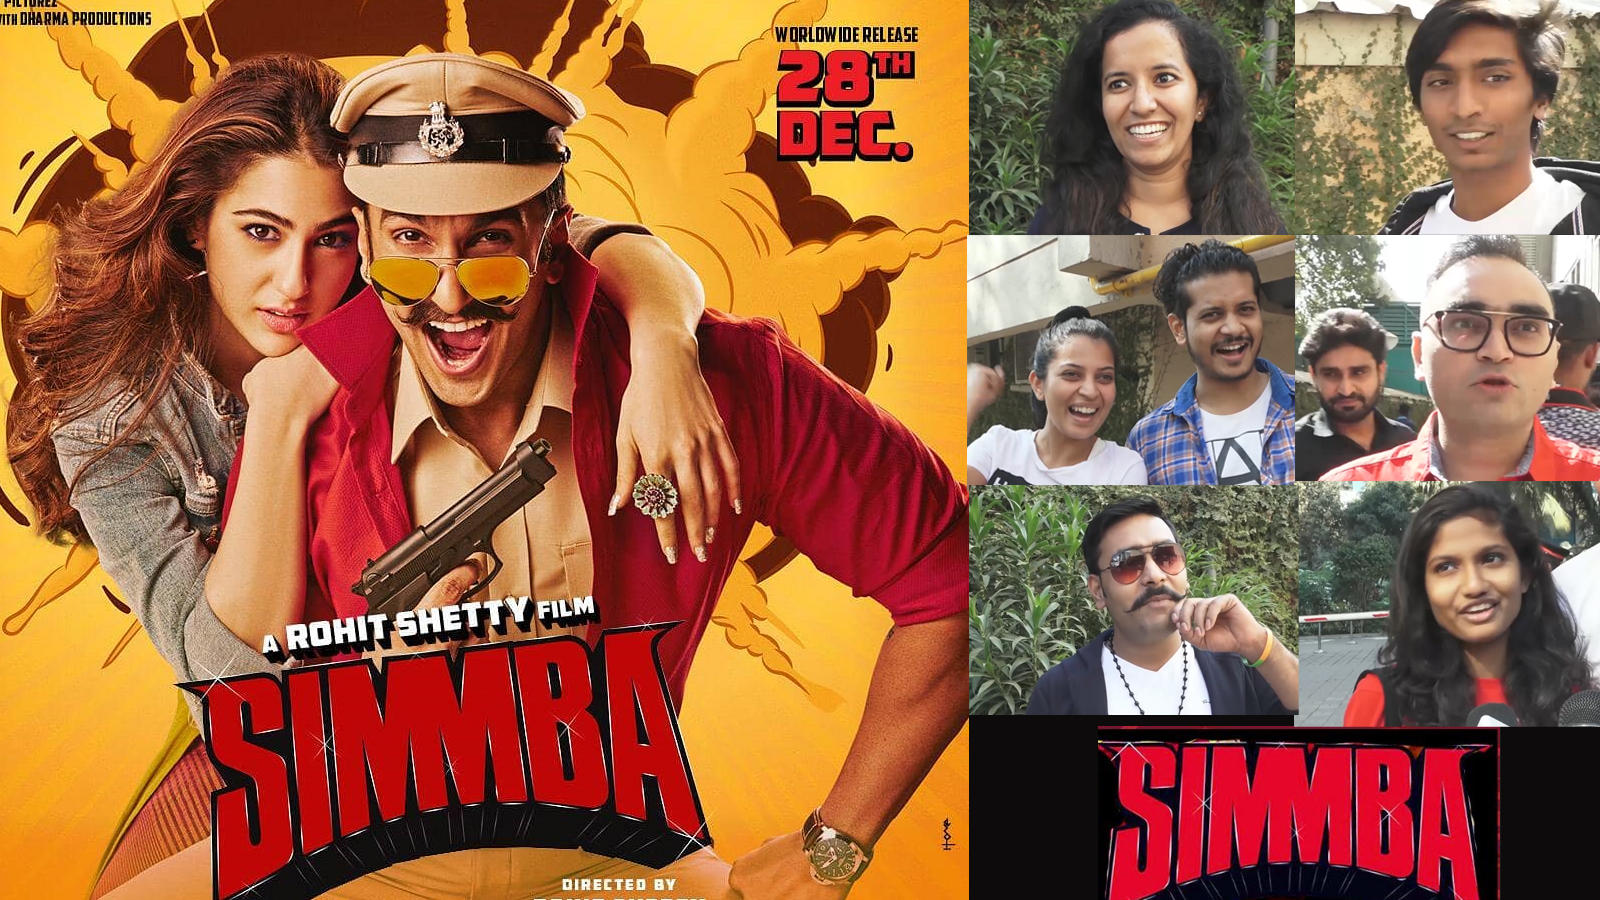 simmba movie download free online